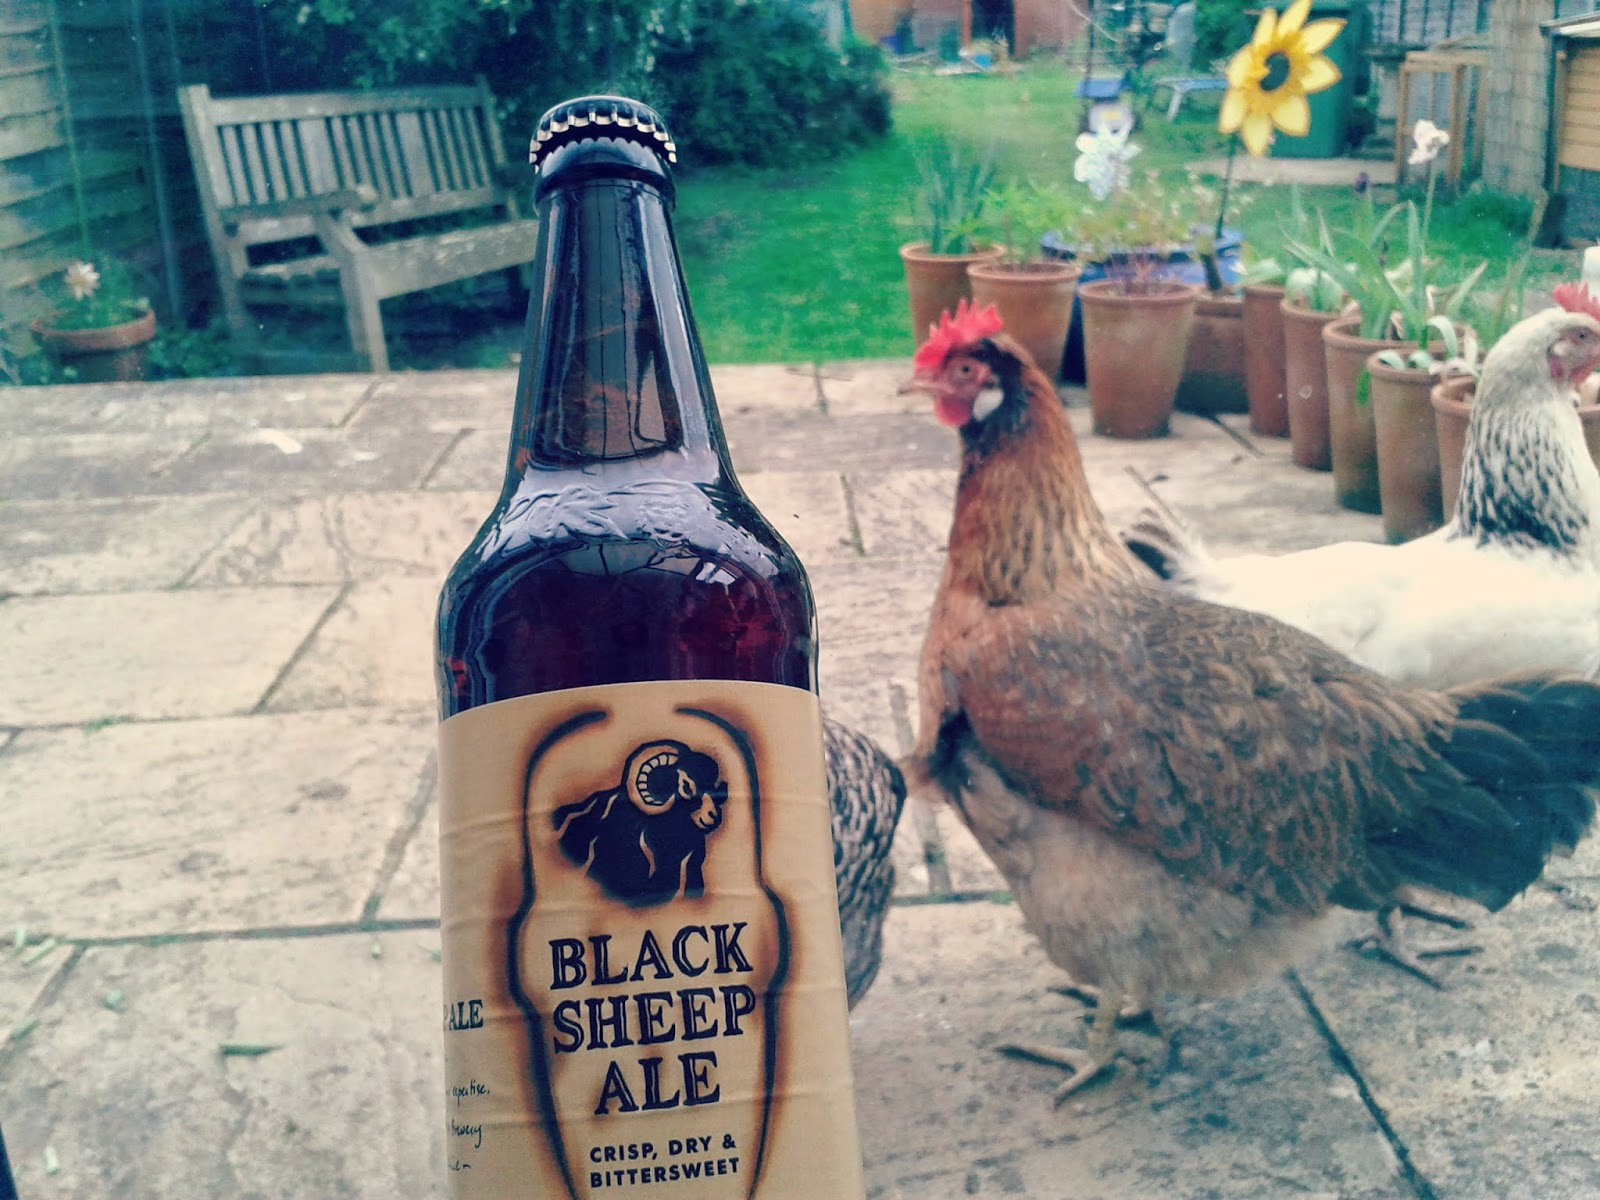 Project 365 day 122 - Black Sheep Ale // 76sunflowers